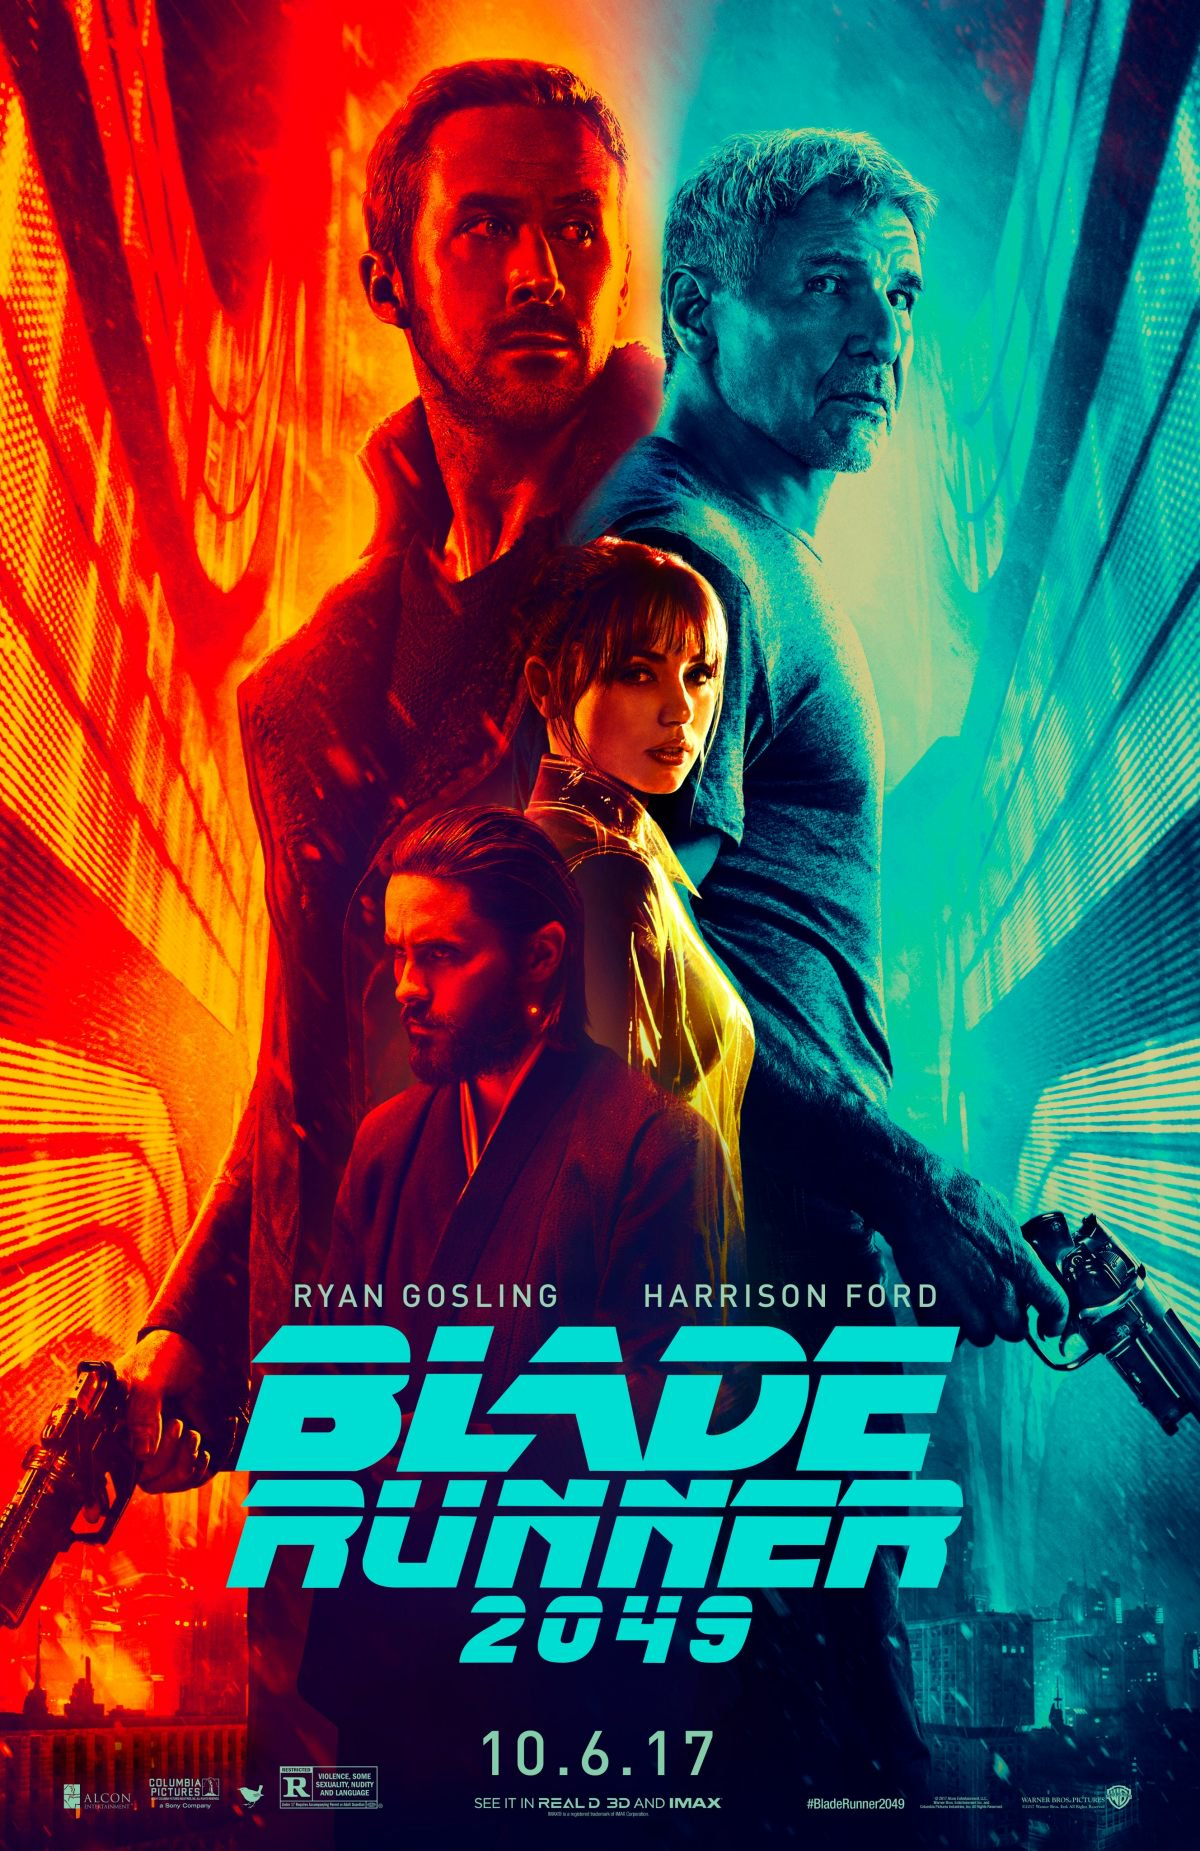 Blade Runner 2049   (2017) dir. Denis Villeneuve Rated: R image: ©2017 Warner Bros. Pictures